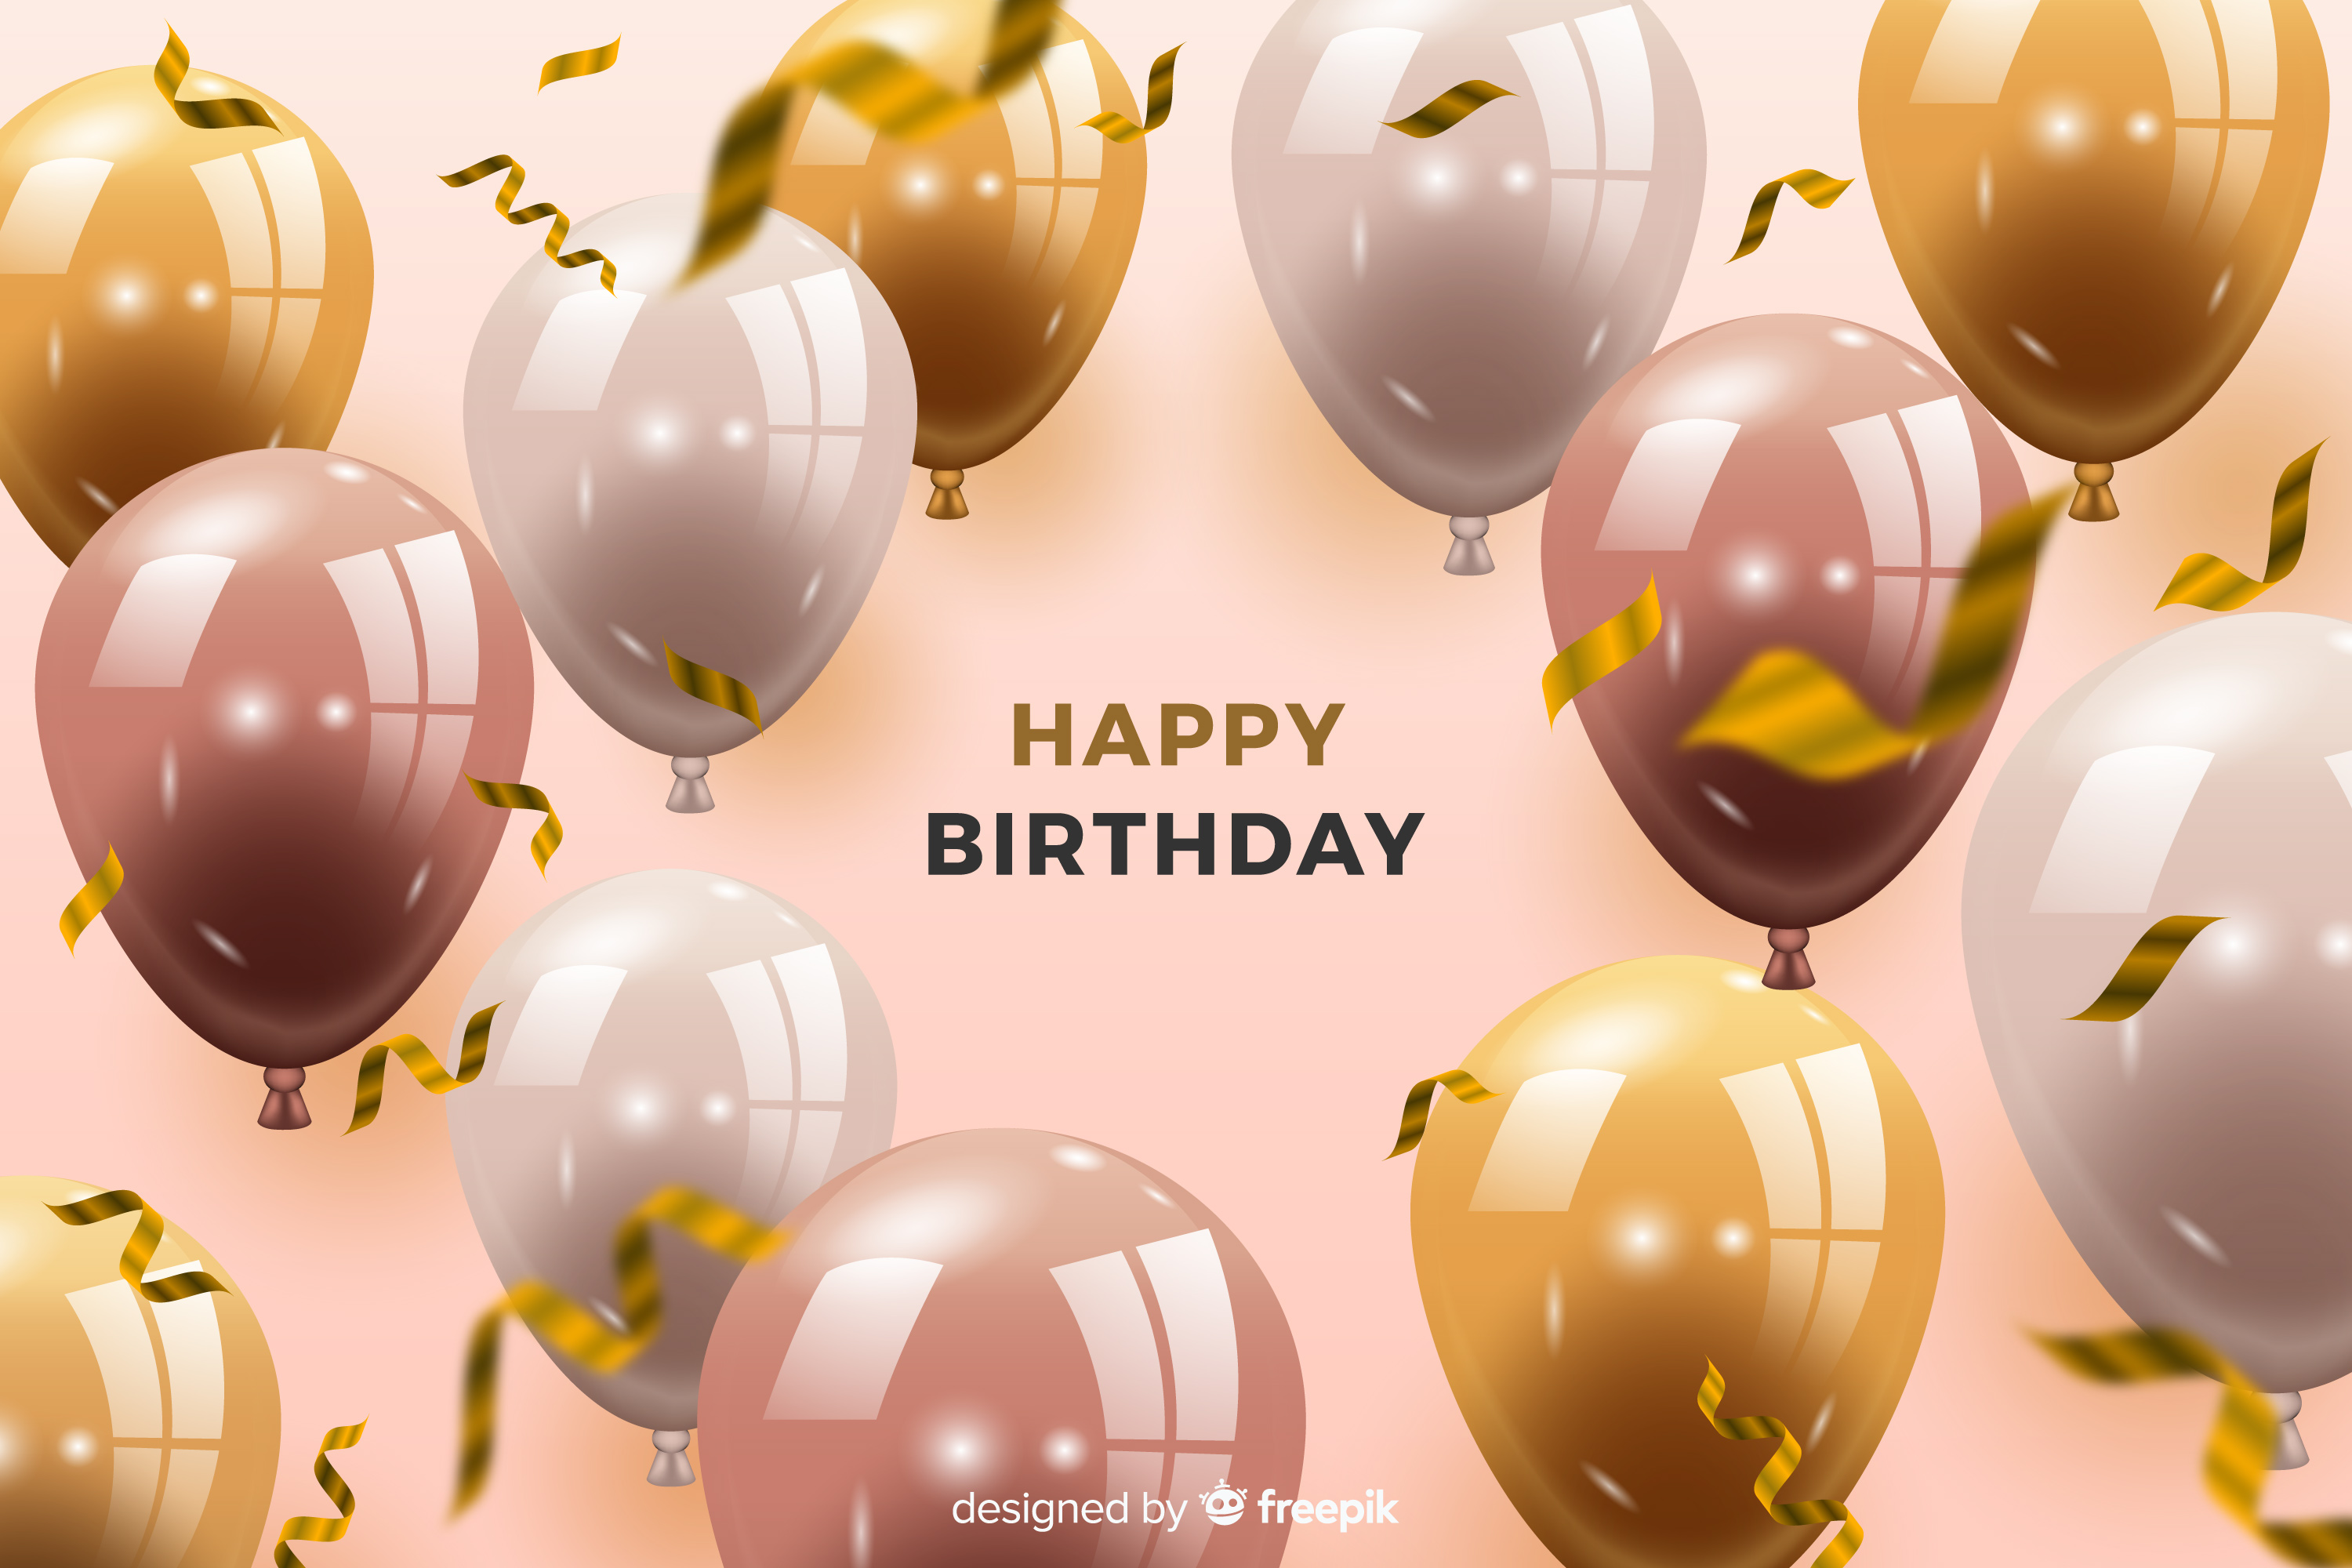 <a href='https://it.freepik.com/vettori-gratuito/sfondo-di-compleanno-con-palloncini_2920866.htm'>Designed by Pikisuperstar</a>